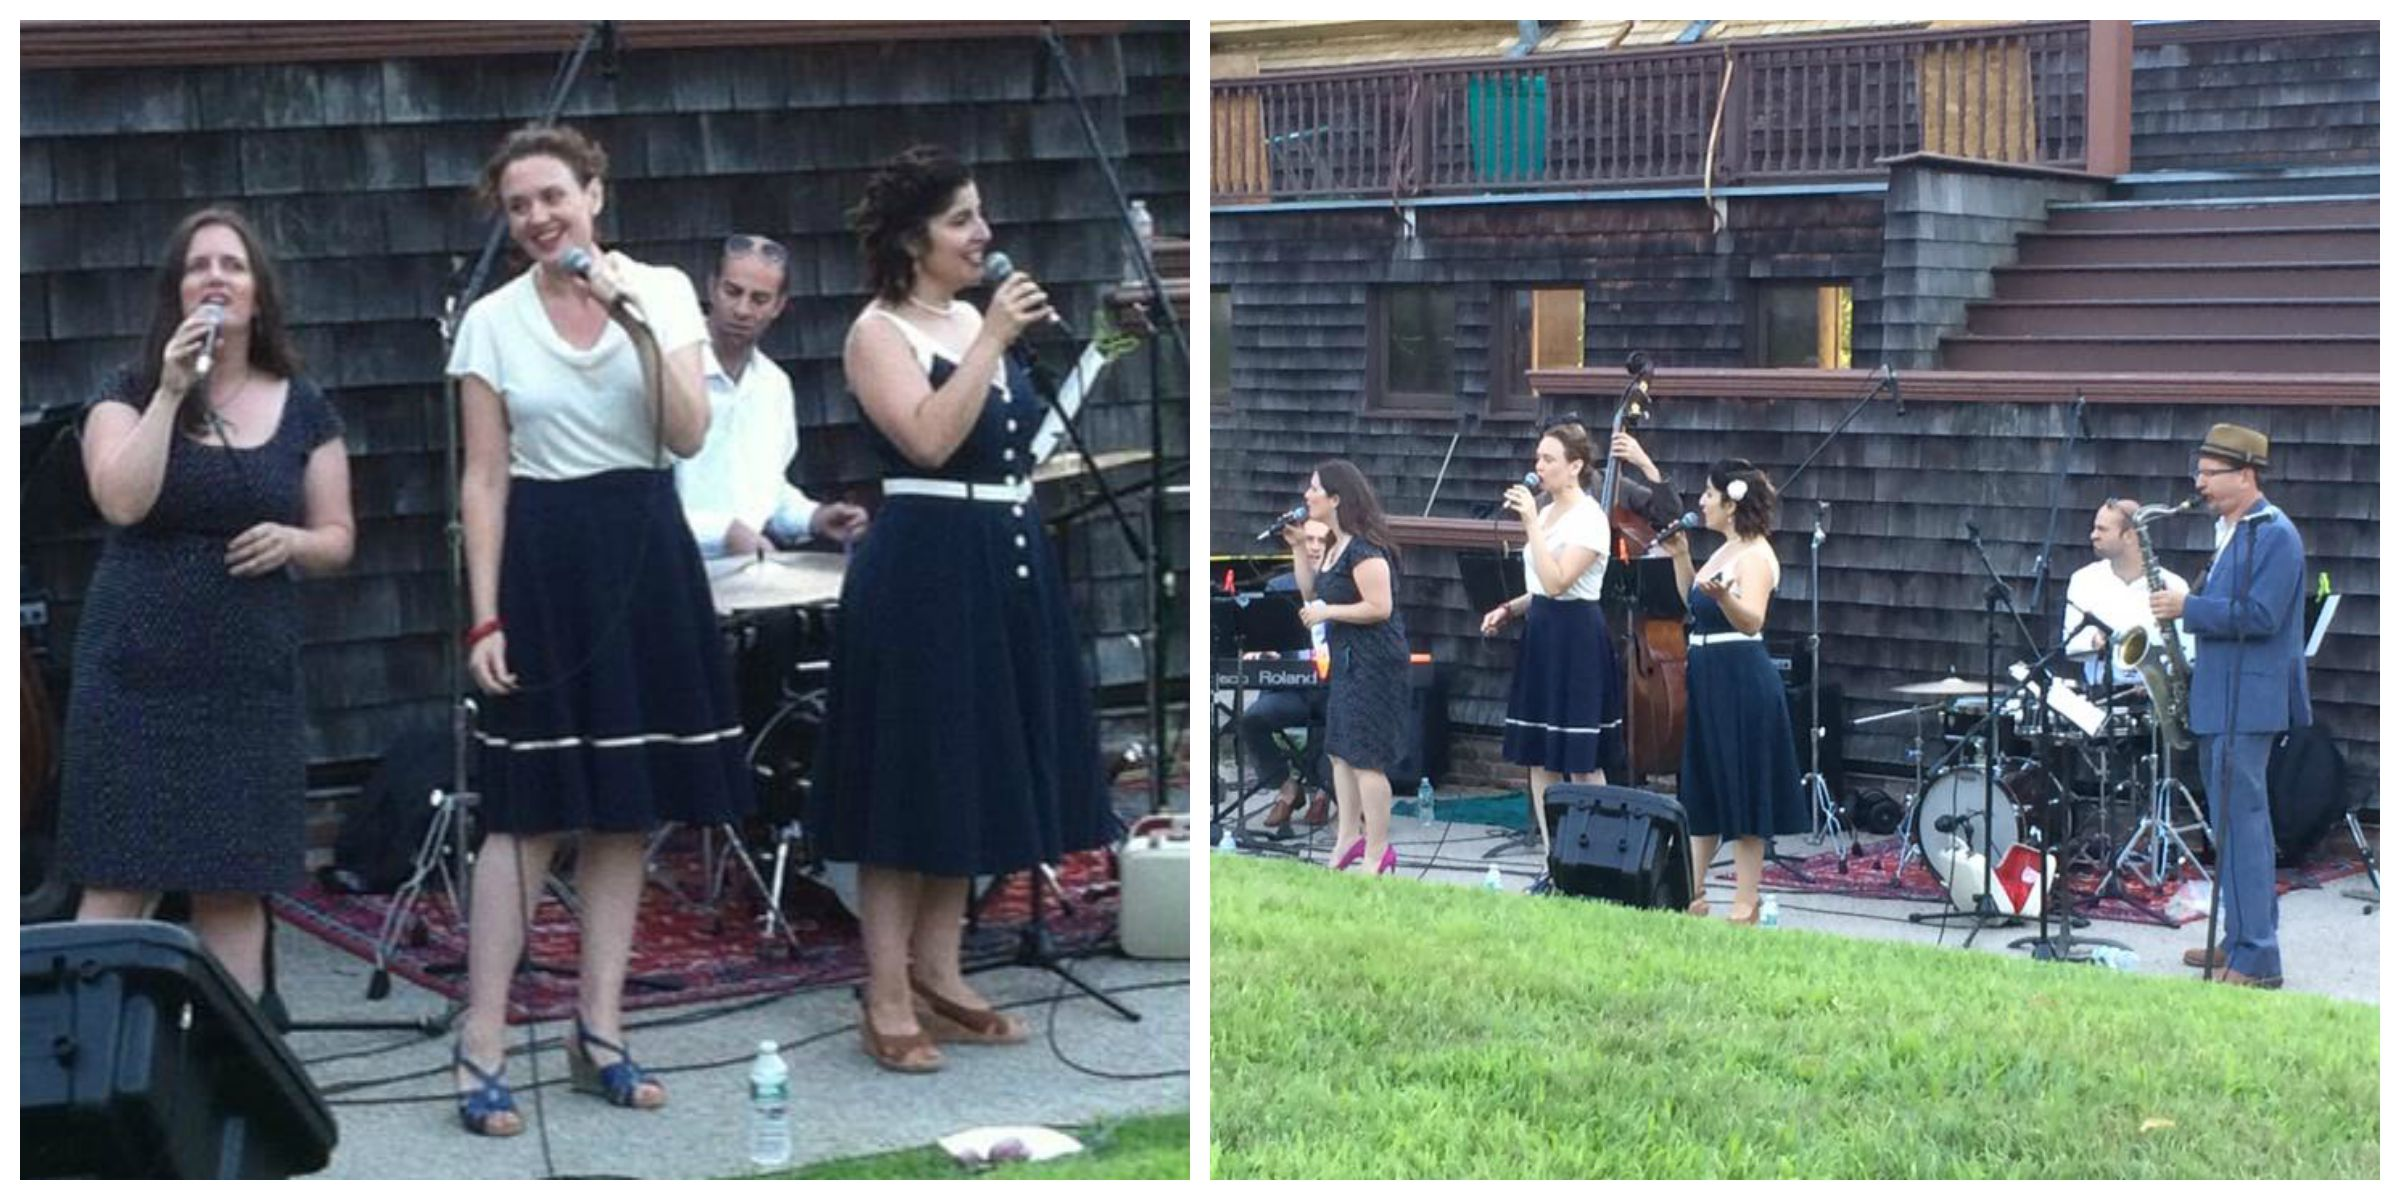 Photos taken by our fans from the Jazz at Lyndhurst concert...a sunny, mild evening in a beautiful outdoor setting.  What a great way to close out our summer!